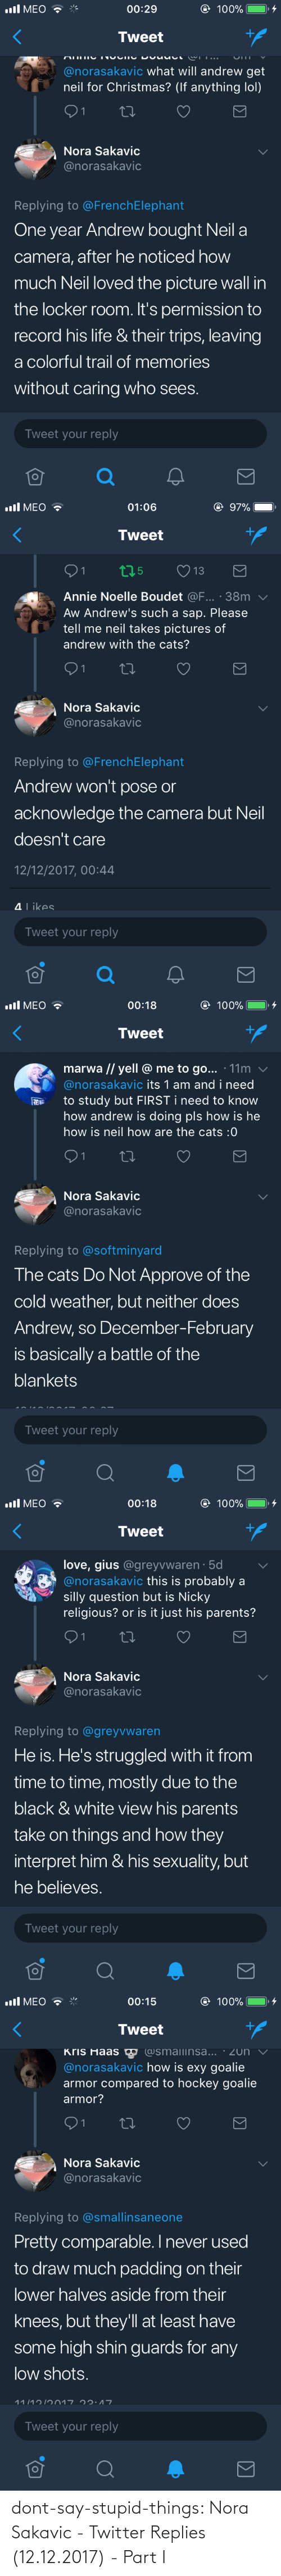 stupid: dont-say-stupid-things:  Nora Sakavic - Twitter Replies (12.12.2017) - Part I